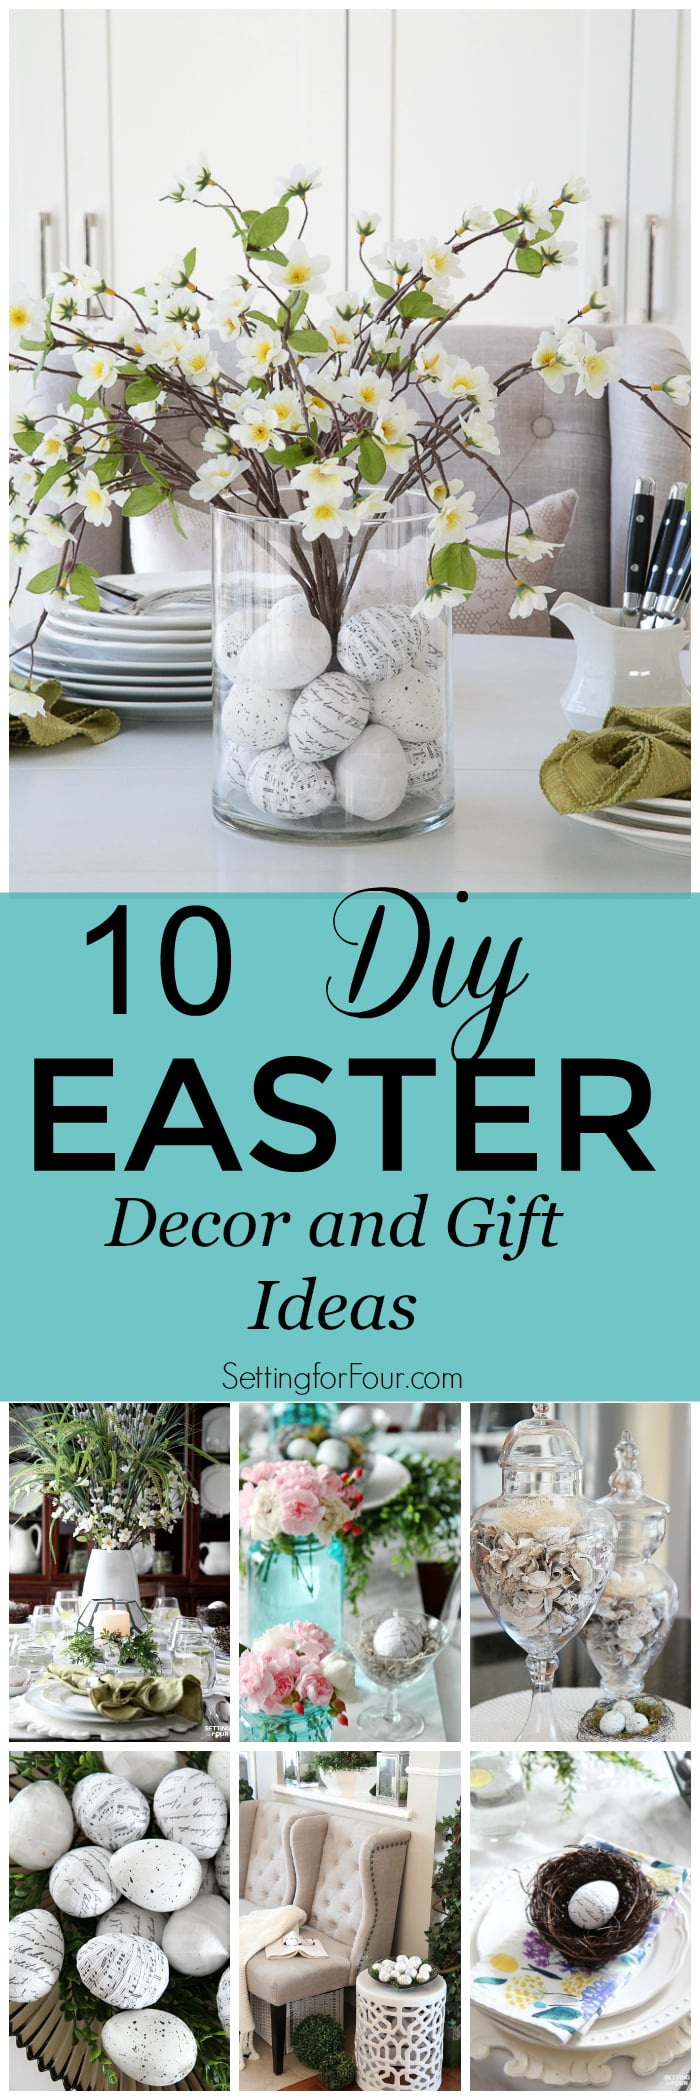 10 Diy Easter Decor And Gift Ideas Setting For Four